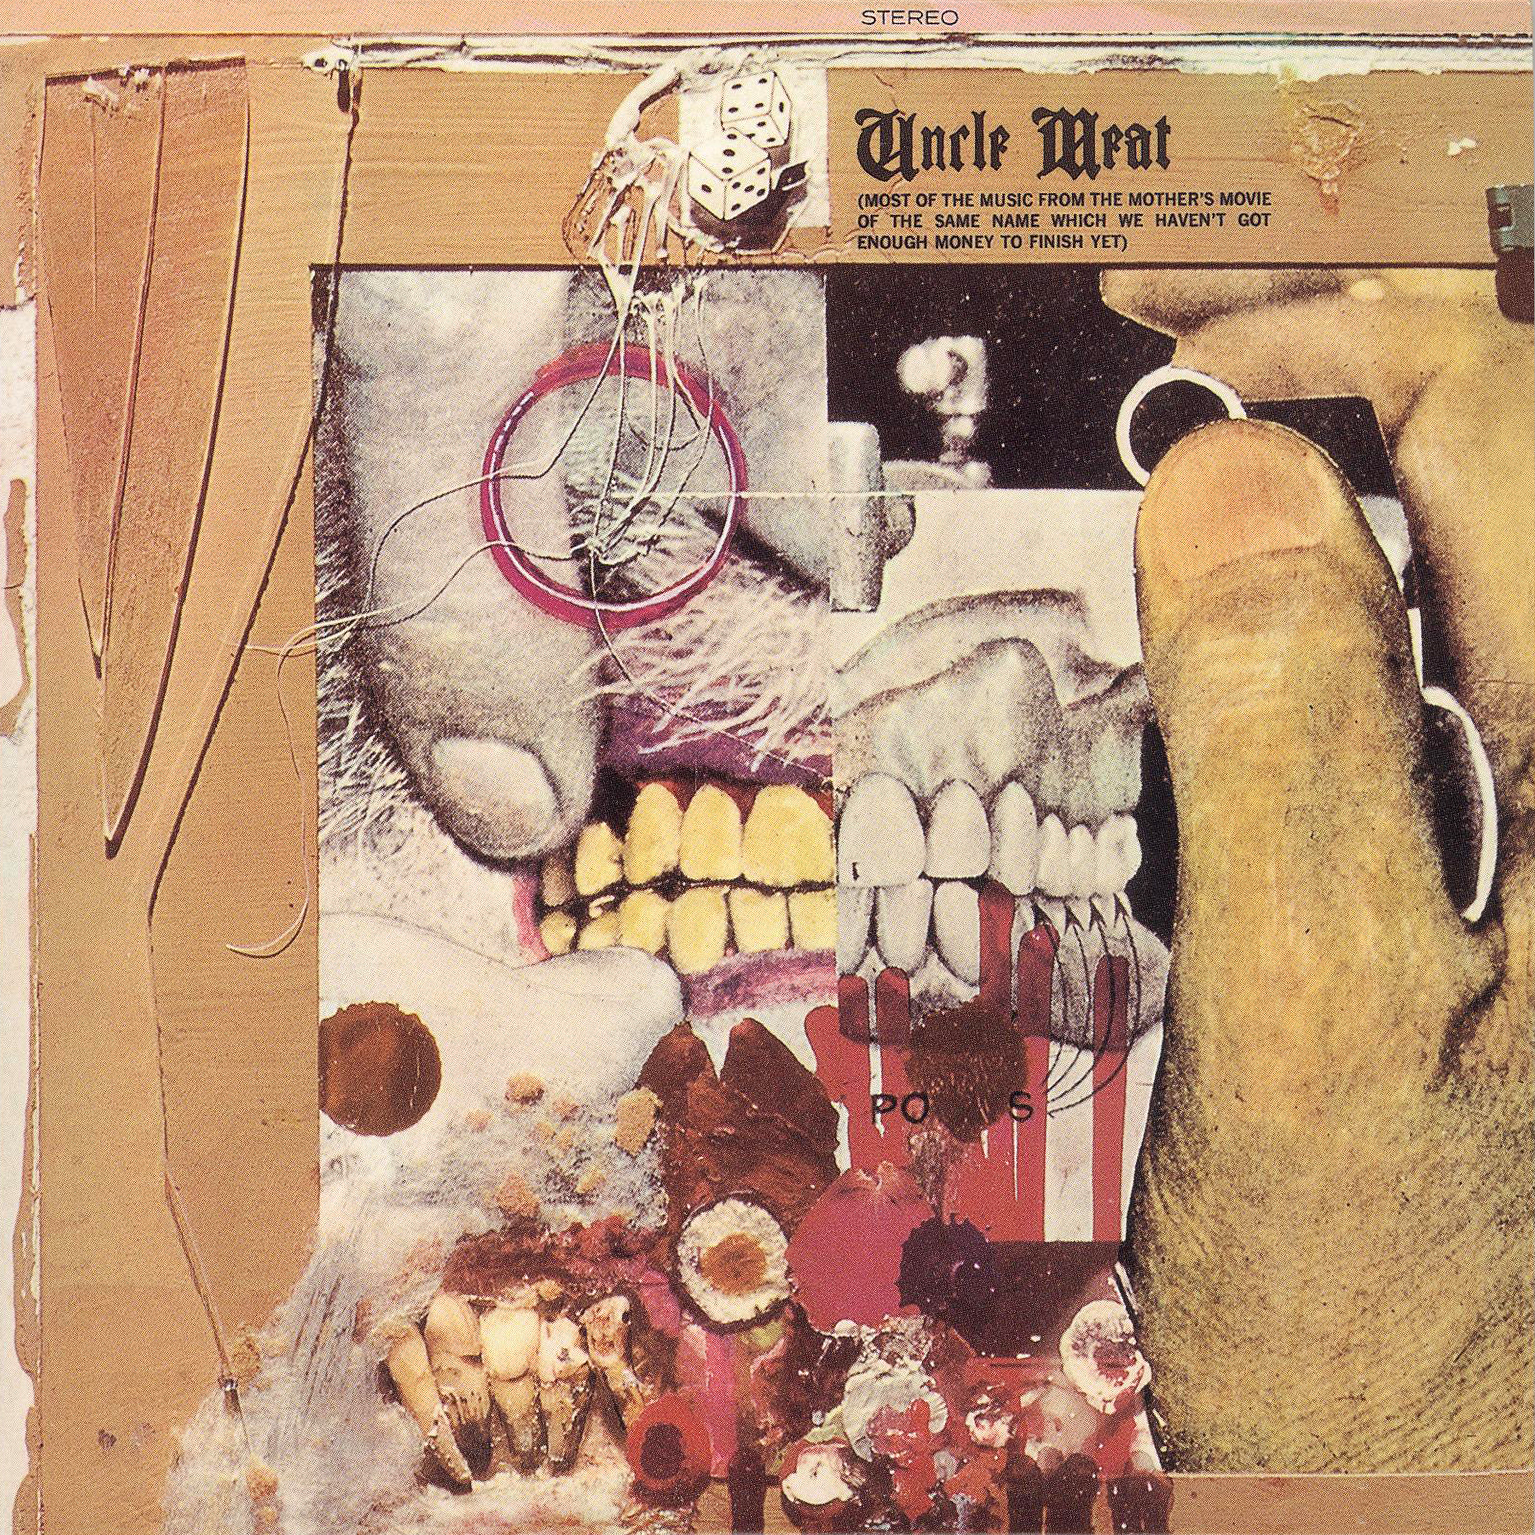 Frank Zappa And Uncle Meat Bibliolore